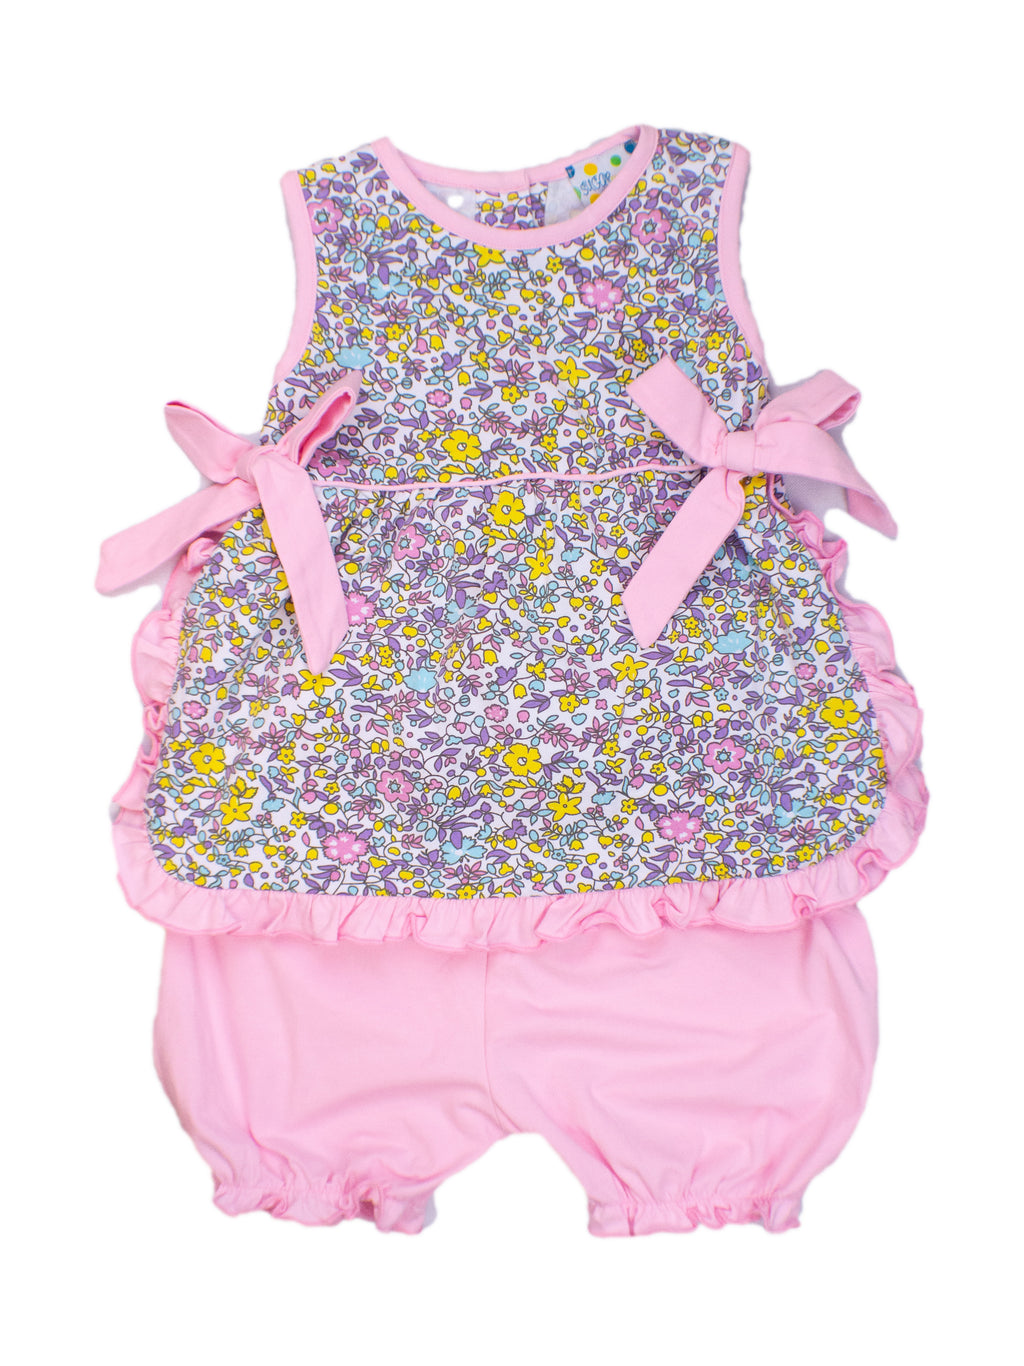 Girls Floral Bloomer Shorts Set with Pink Bows